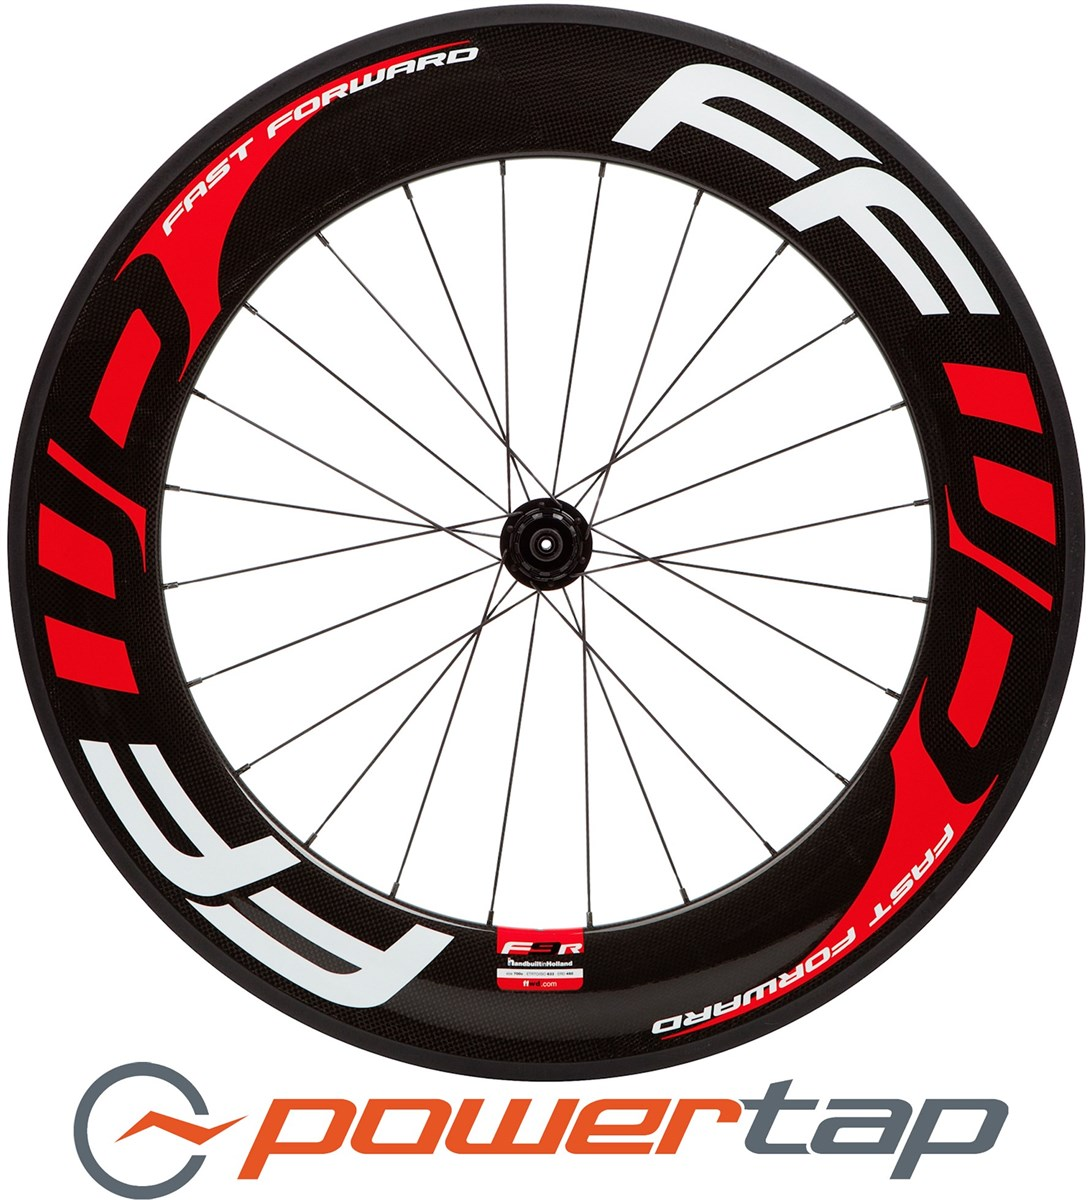 Fast Forward F9R PowerTap G3 Full Carbon Clincher Rear Wheel